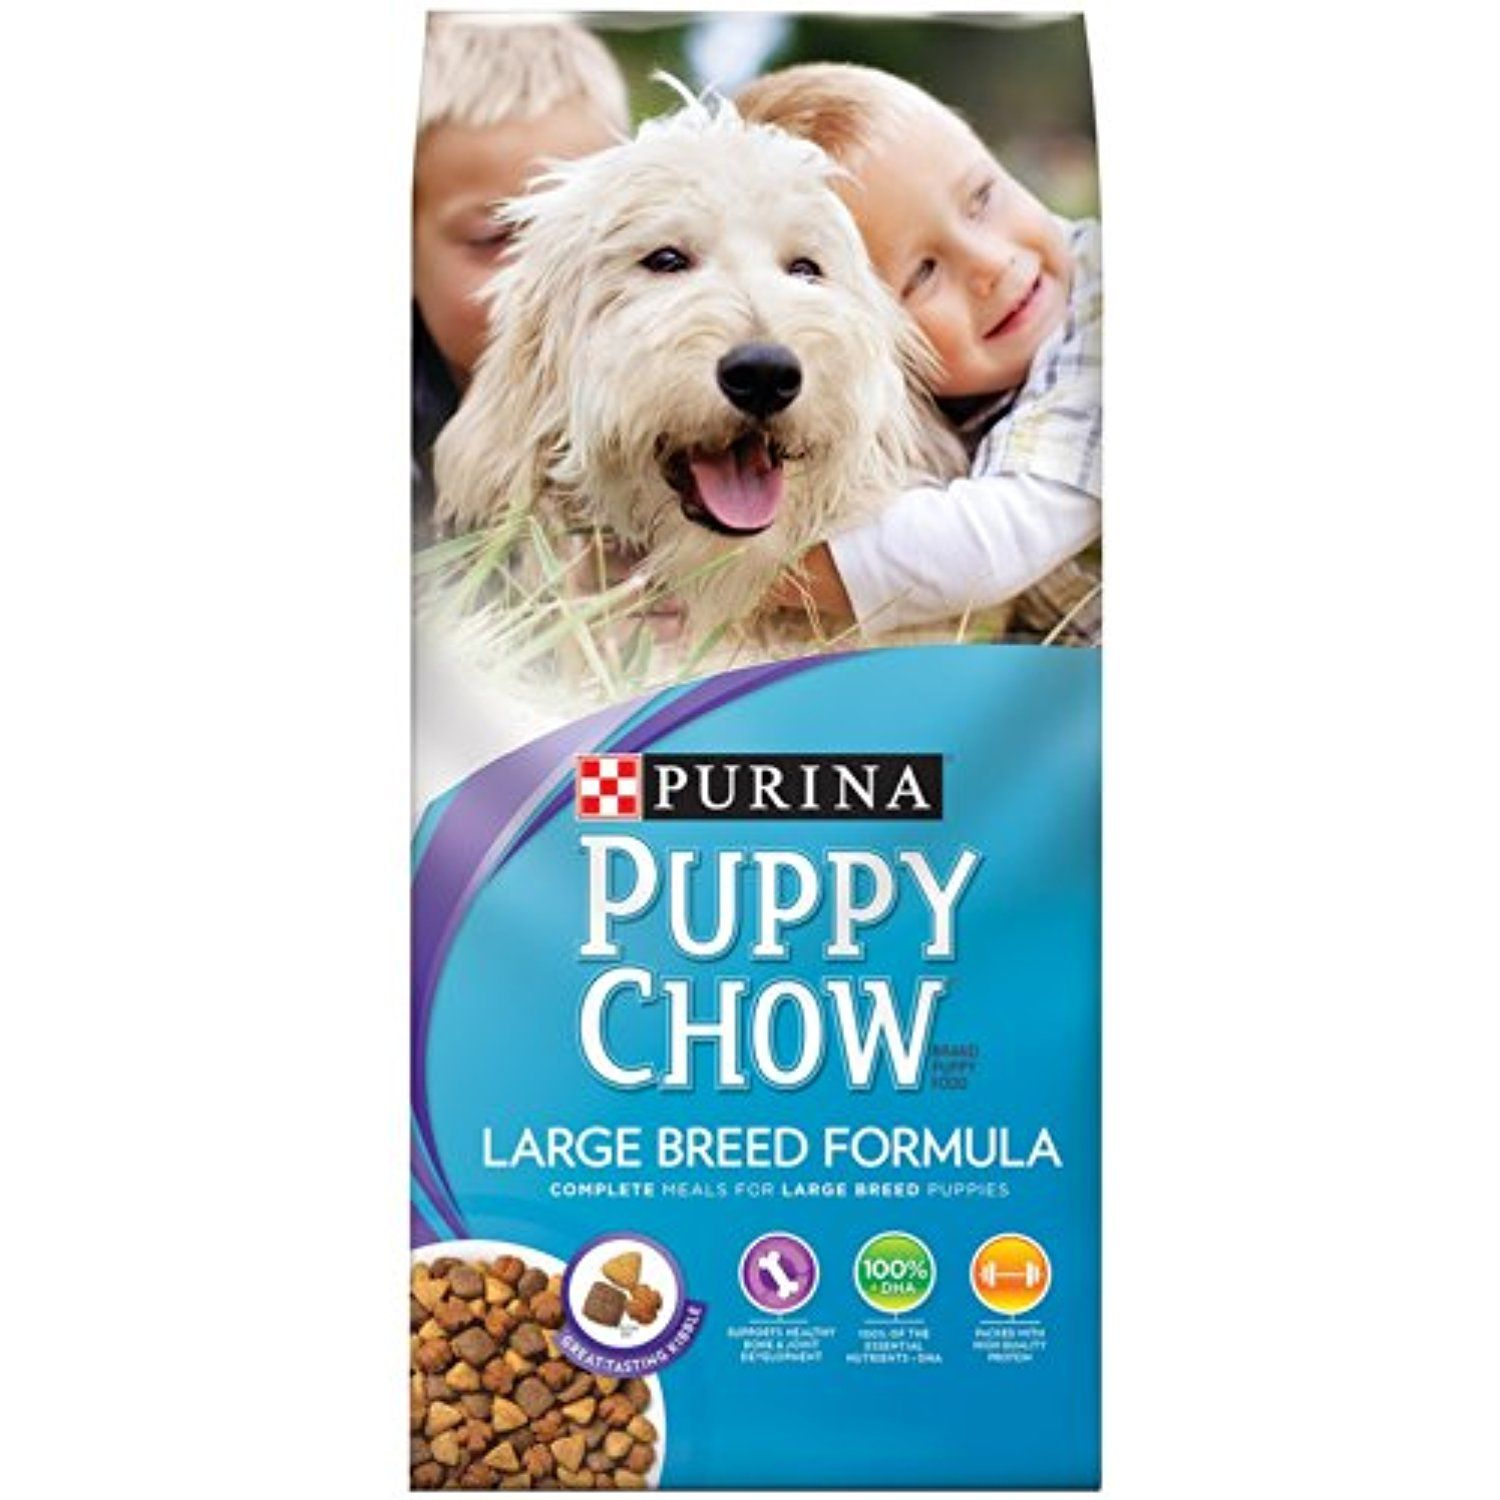 Puppy Food 16 5lb Pack Of 4 Please Be Sure To Check Out This Awesome Product This Is An Affiliate L Purina Puppy Chow Large Breed Puppy Food Purina Puppy